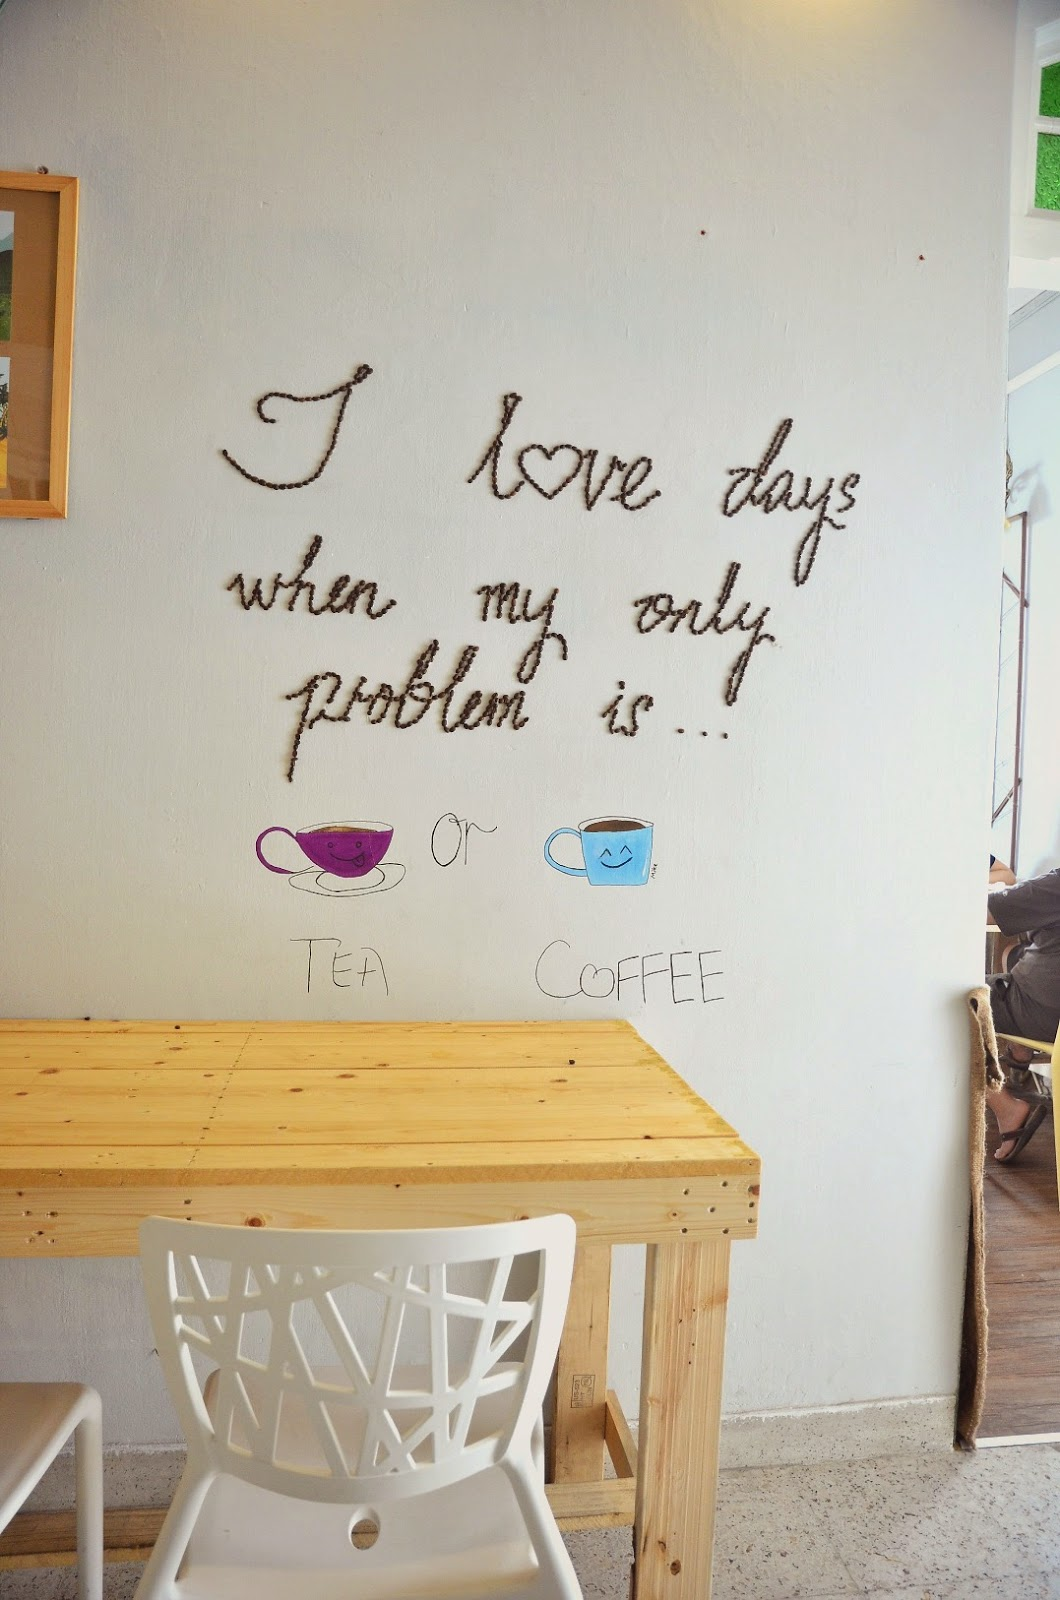 Perfect I never had this problem it us forever coffee for me Guess my life is much easier then